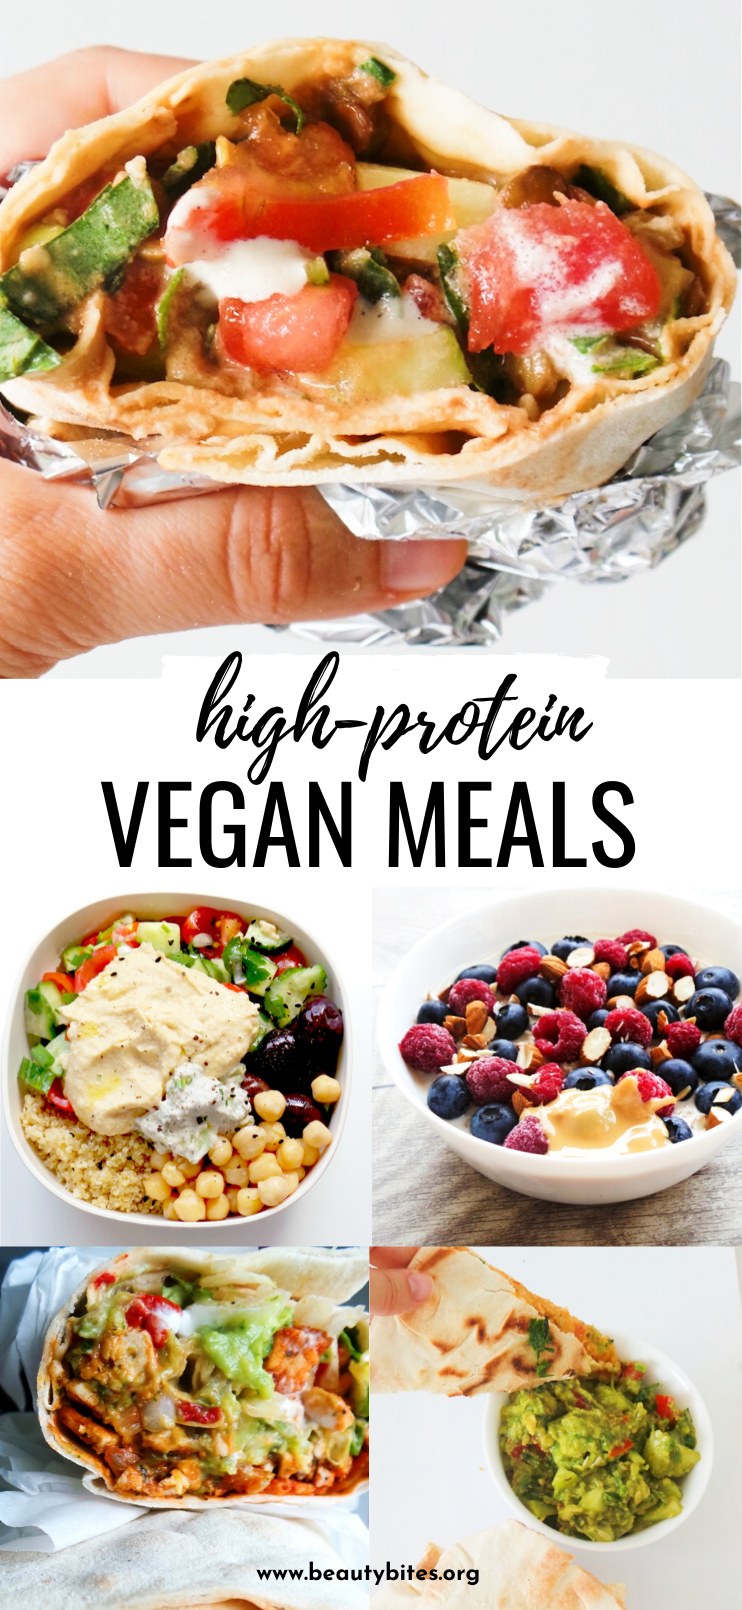 15 high-protein vegan meals to add to your meal plan this week! These easy and healthy plant based recipes include breakfast, lunch and dinner and you'll love them even if you're not vegan!